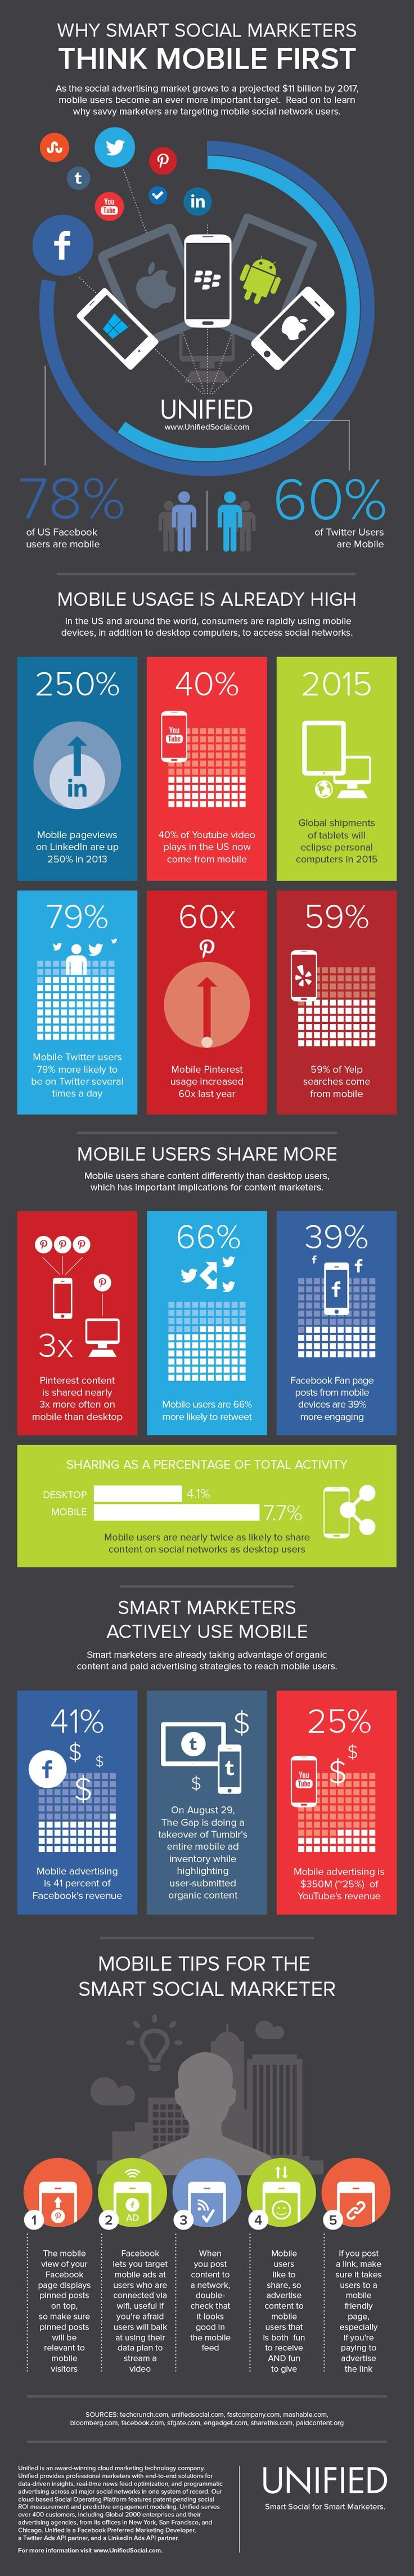 Infographic:  Why smart social marketers think mobile first. #socialmedia #infographics #InfographicsSocialMedia